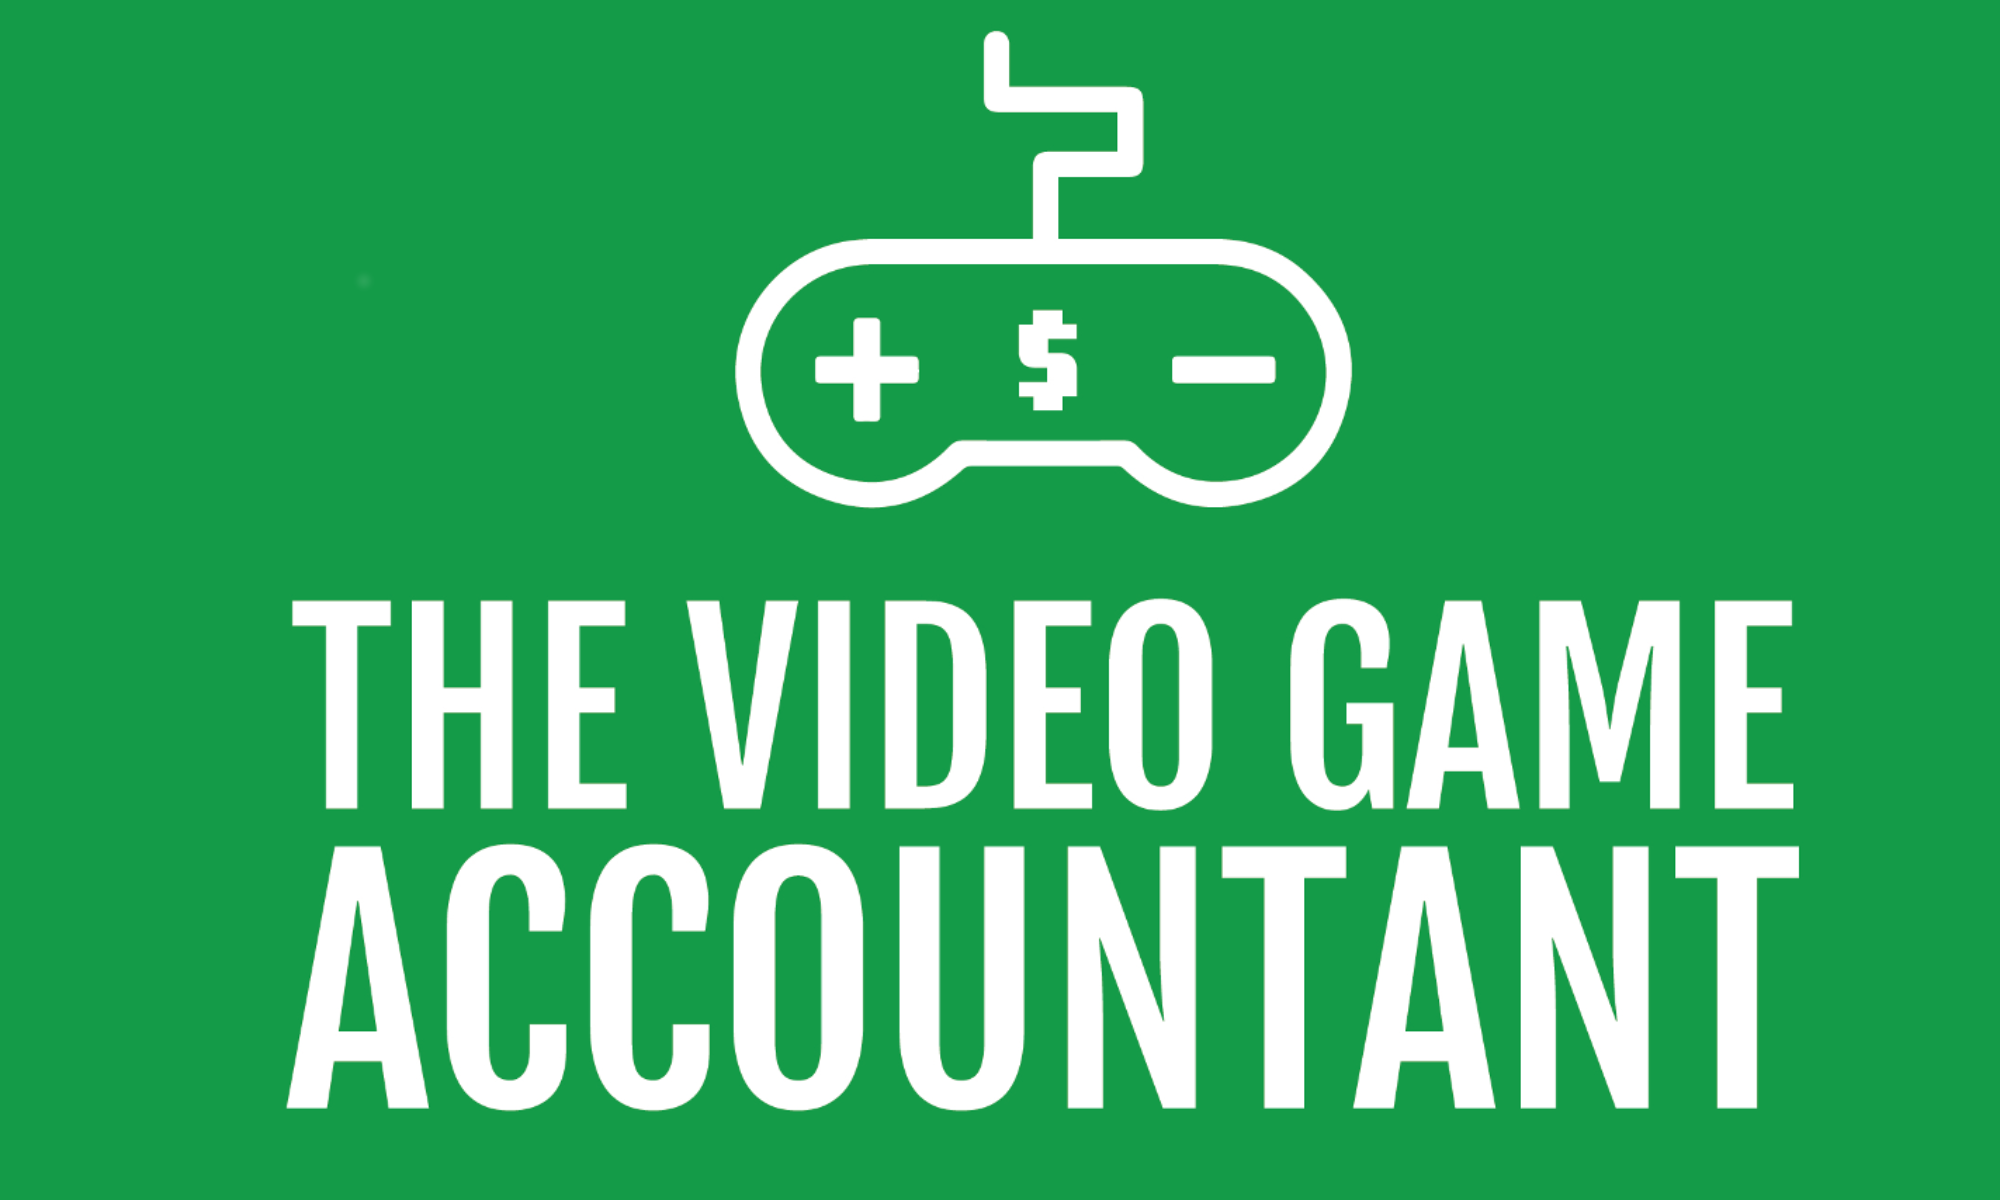 The Video Game Accountant